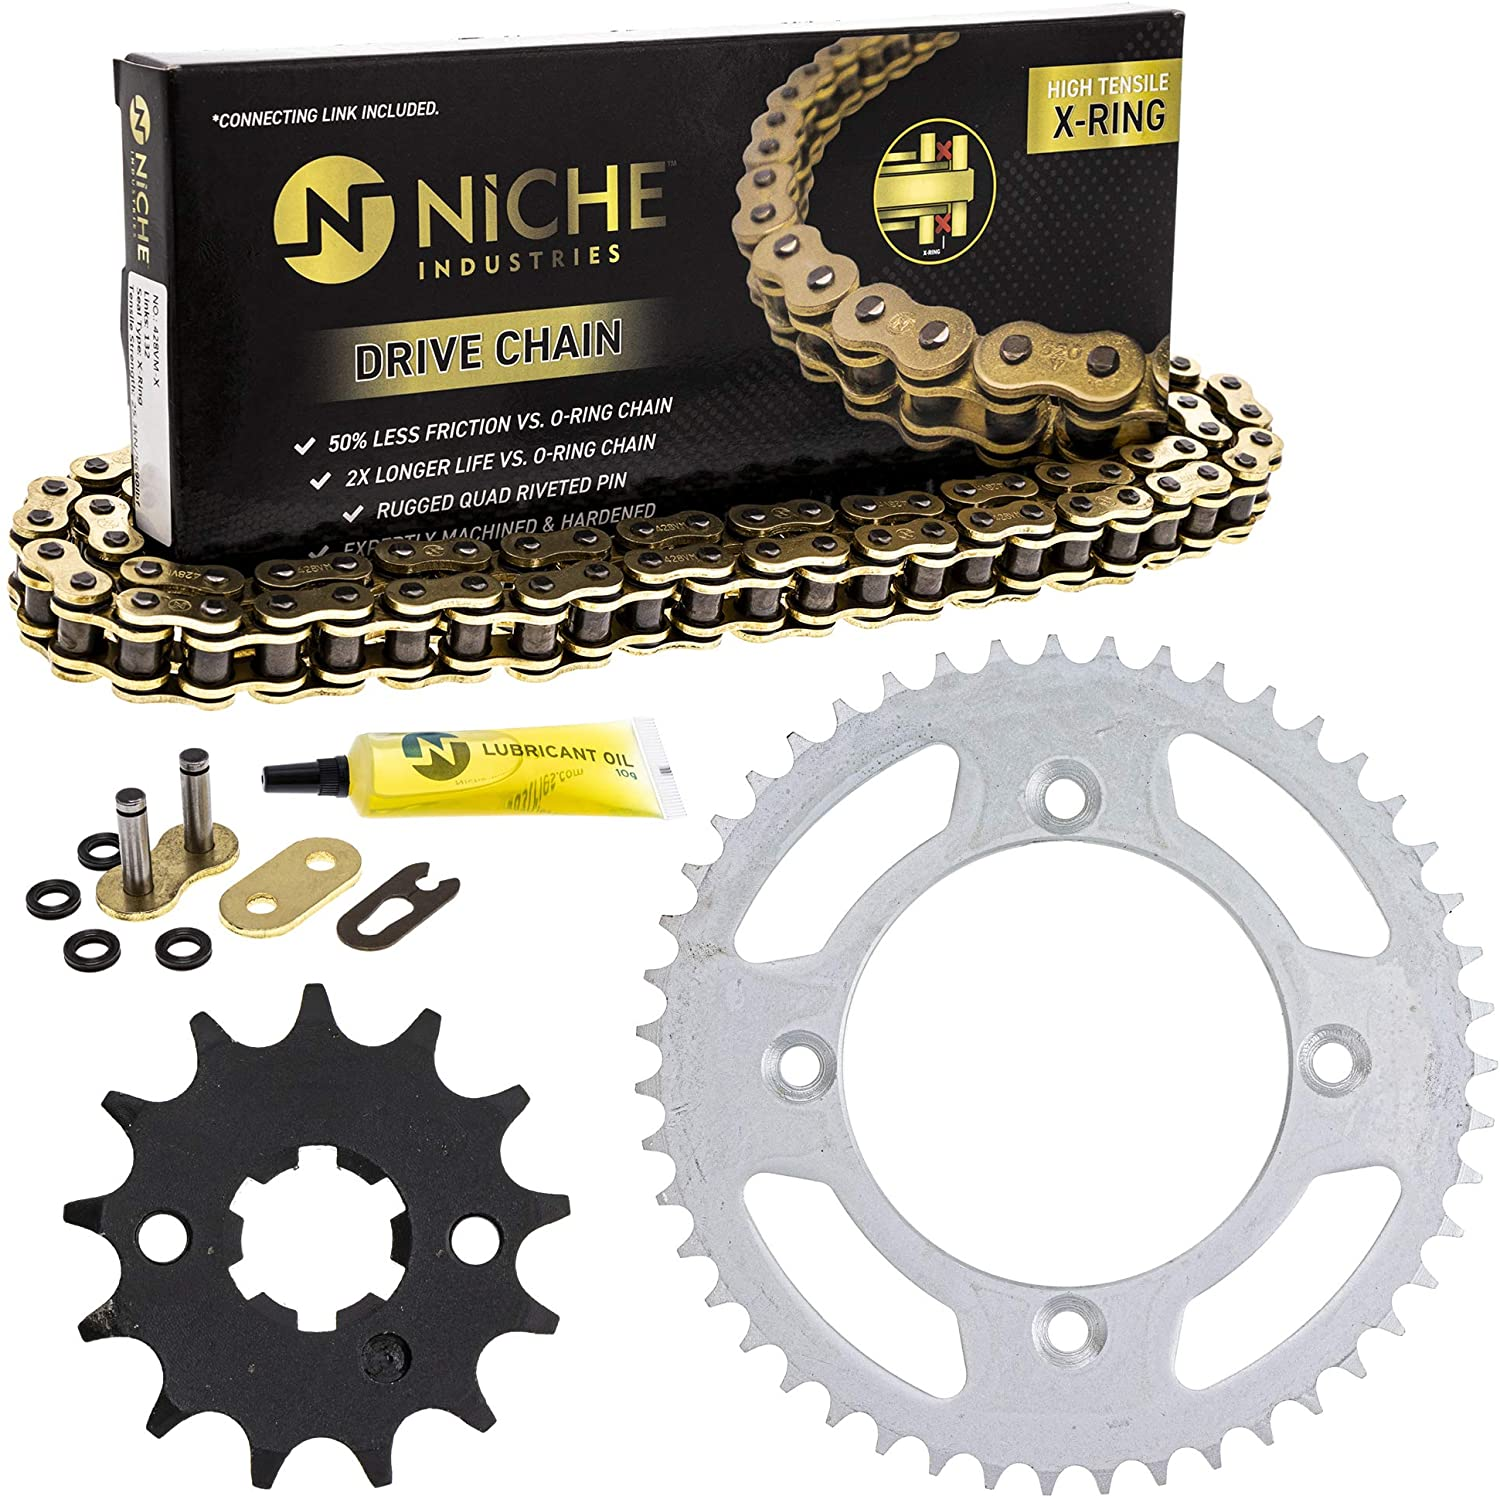 NICHE Drive Sprocket Chain Combo for Suzuki RM85L Front 13 Rear 47 Tooth 428VM-X X-Ring 122 Links